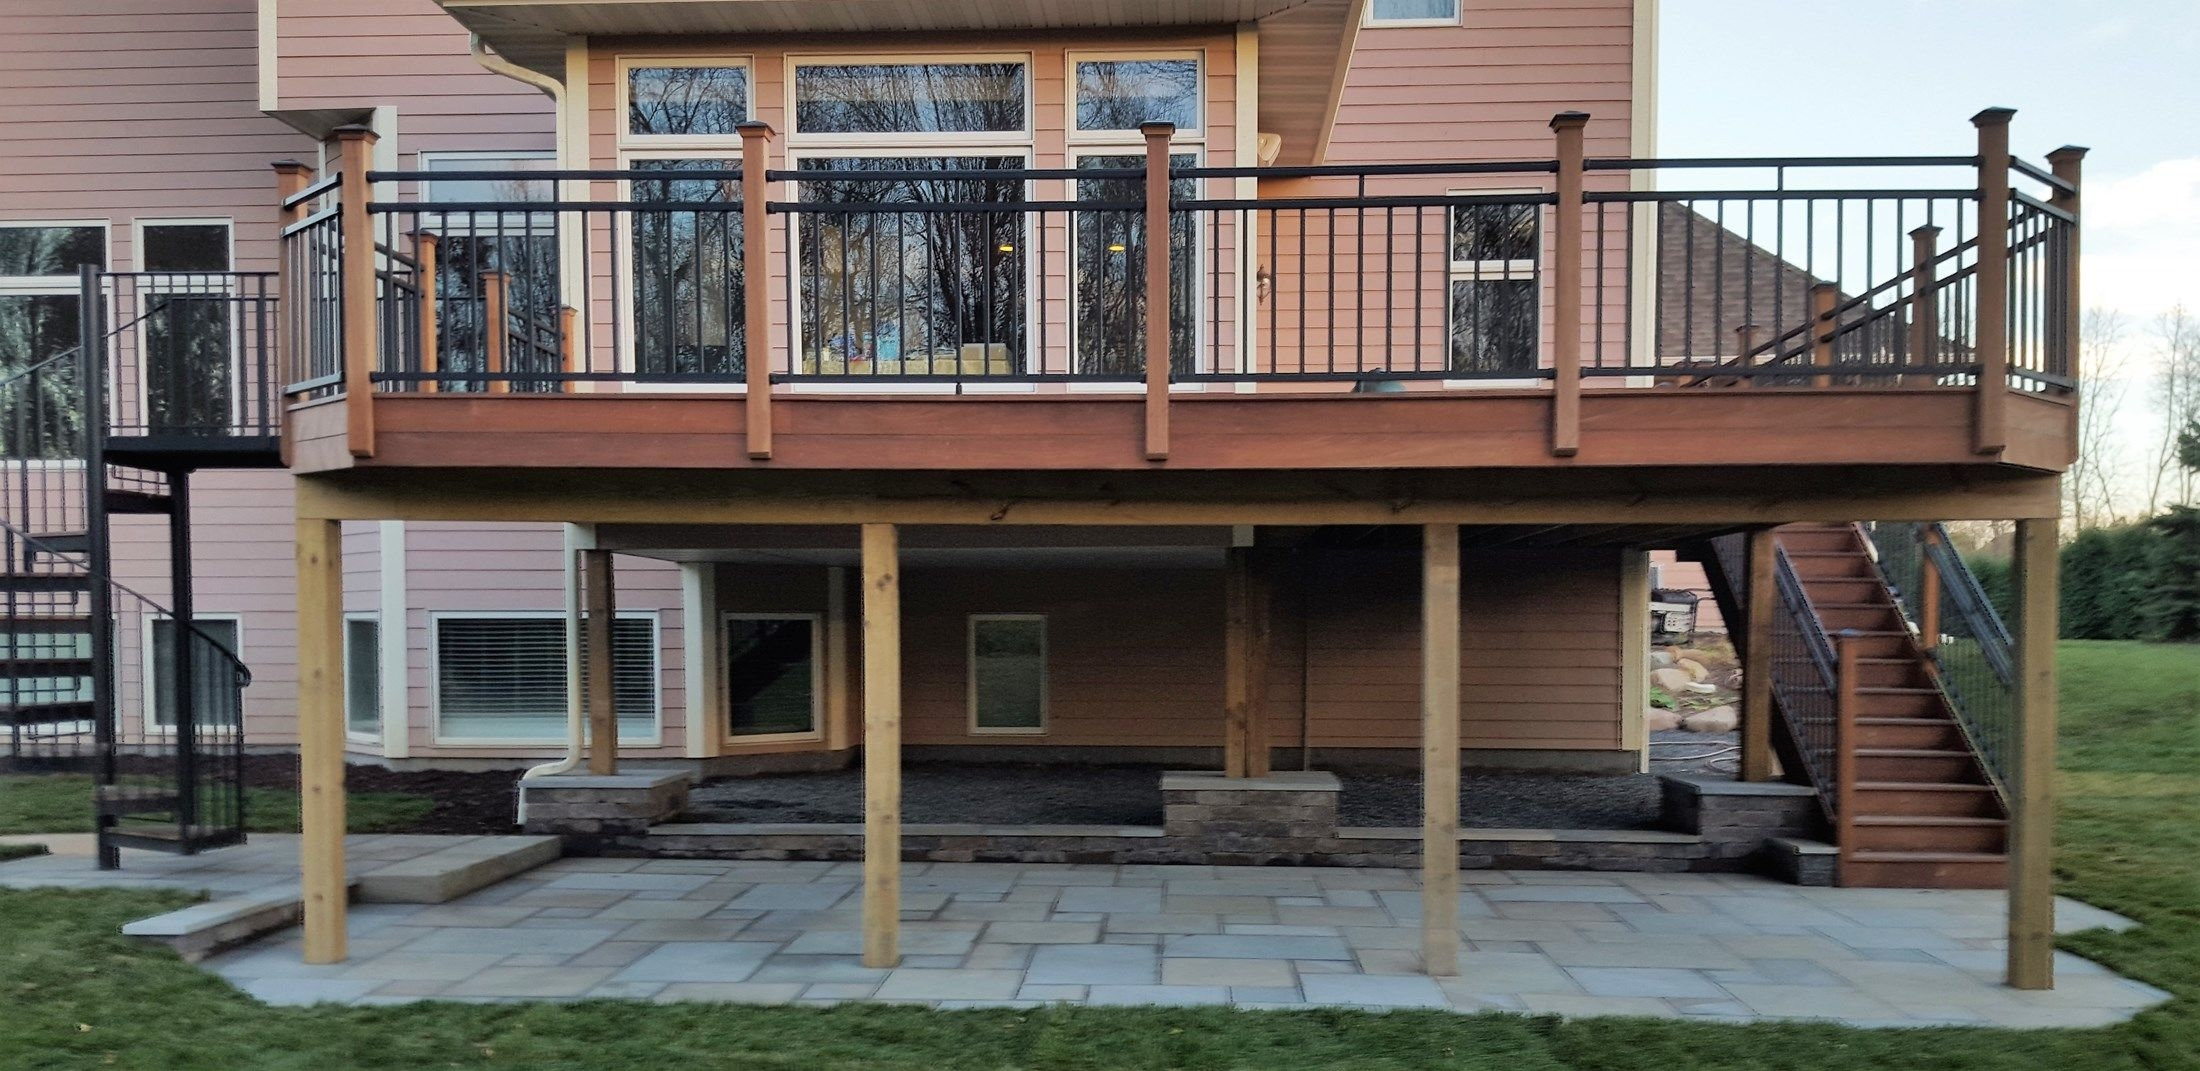 Deck With Spiral Stair Case Picture 6449 Decks Com | Outdoor Spiral Staircase For Deck | Farmhouse | Basement | Multi Level | 2Nd Floor | Steel